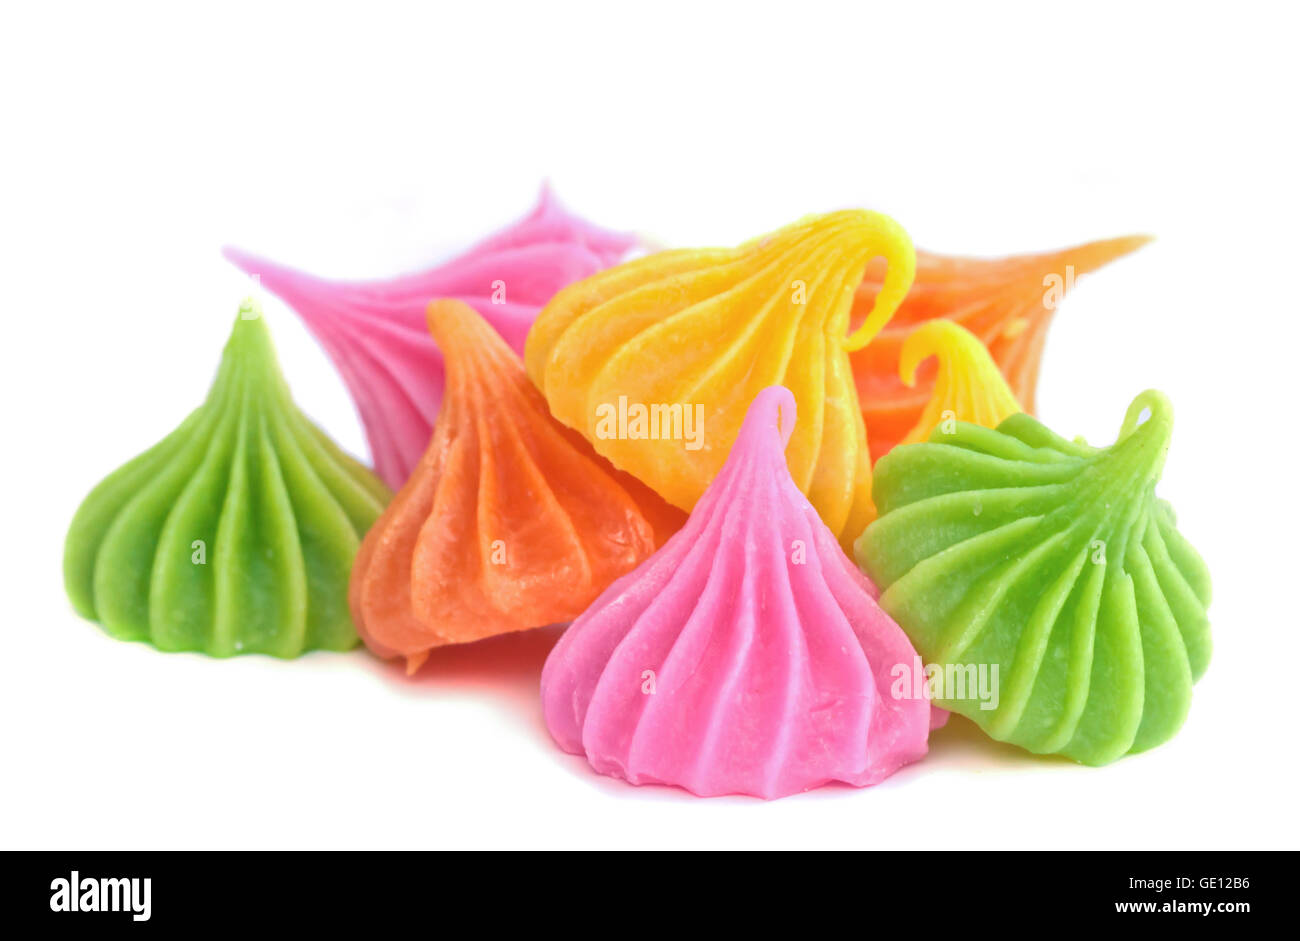 Close-up of colorful candy. 'A-lua' Thai style handmade candy sweet dessert . - Stock Image